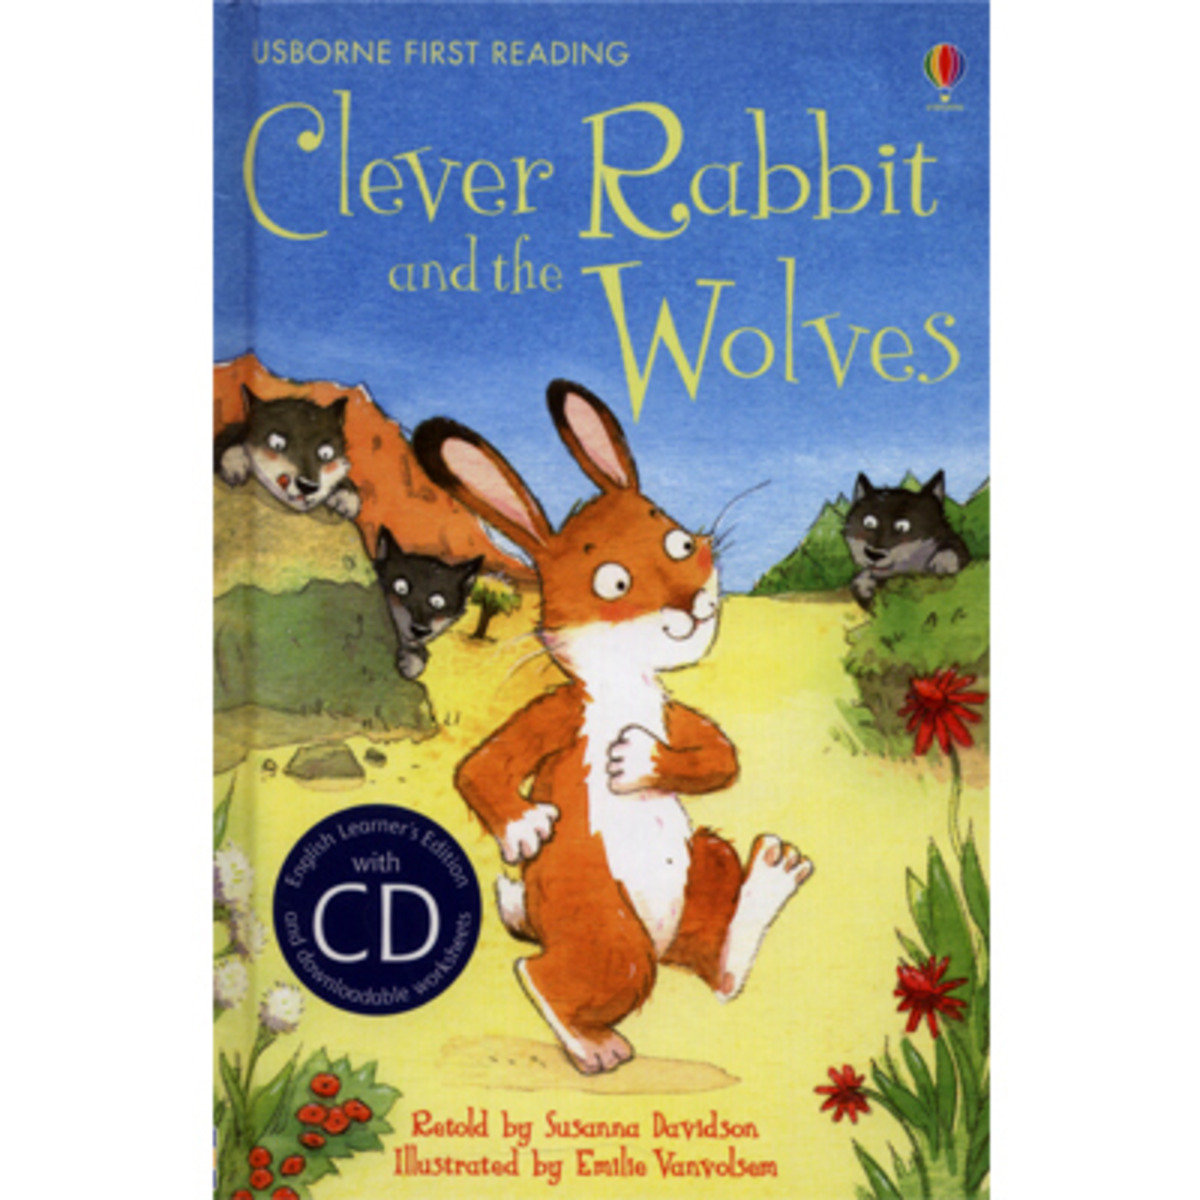 Clever Rabbit and the Wolves-First Reading 2 with CD